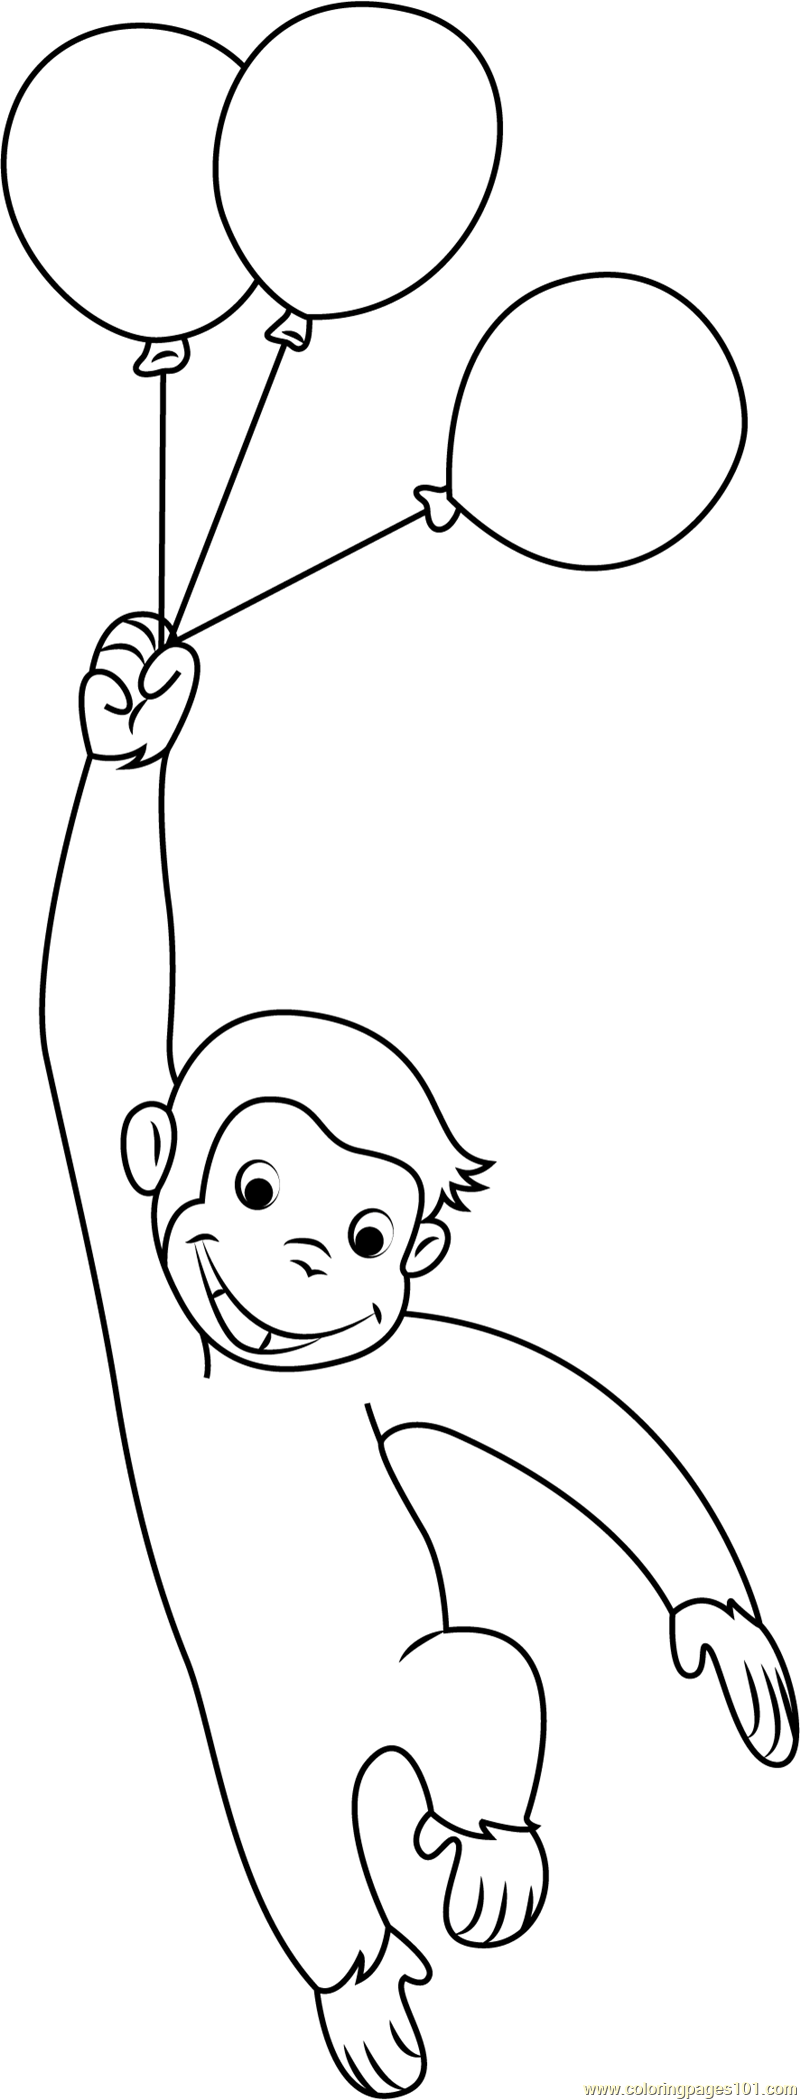 Coloring book curious george - Get Free High Quality Hd Wallpapers Curious George Coloring Book Bulk